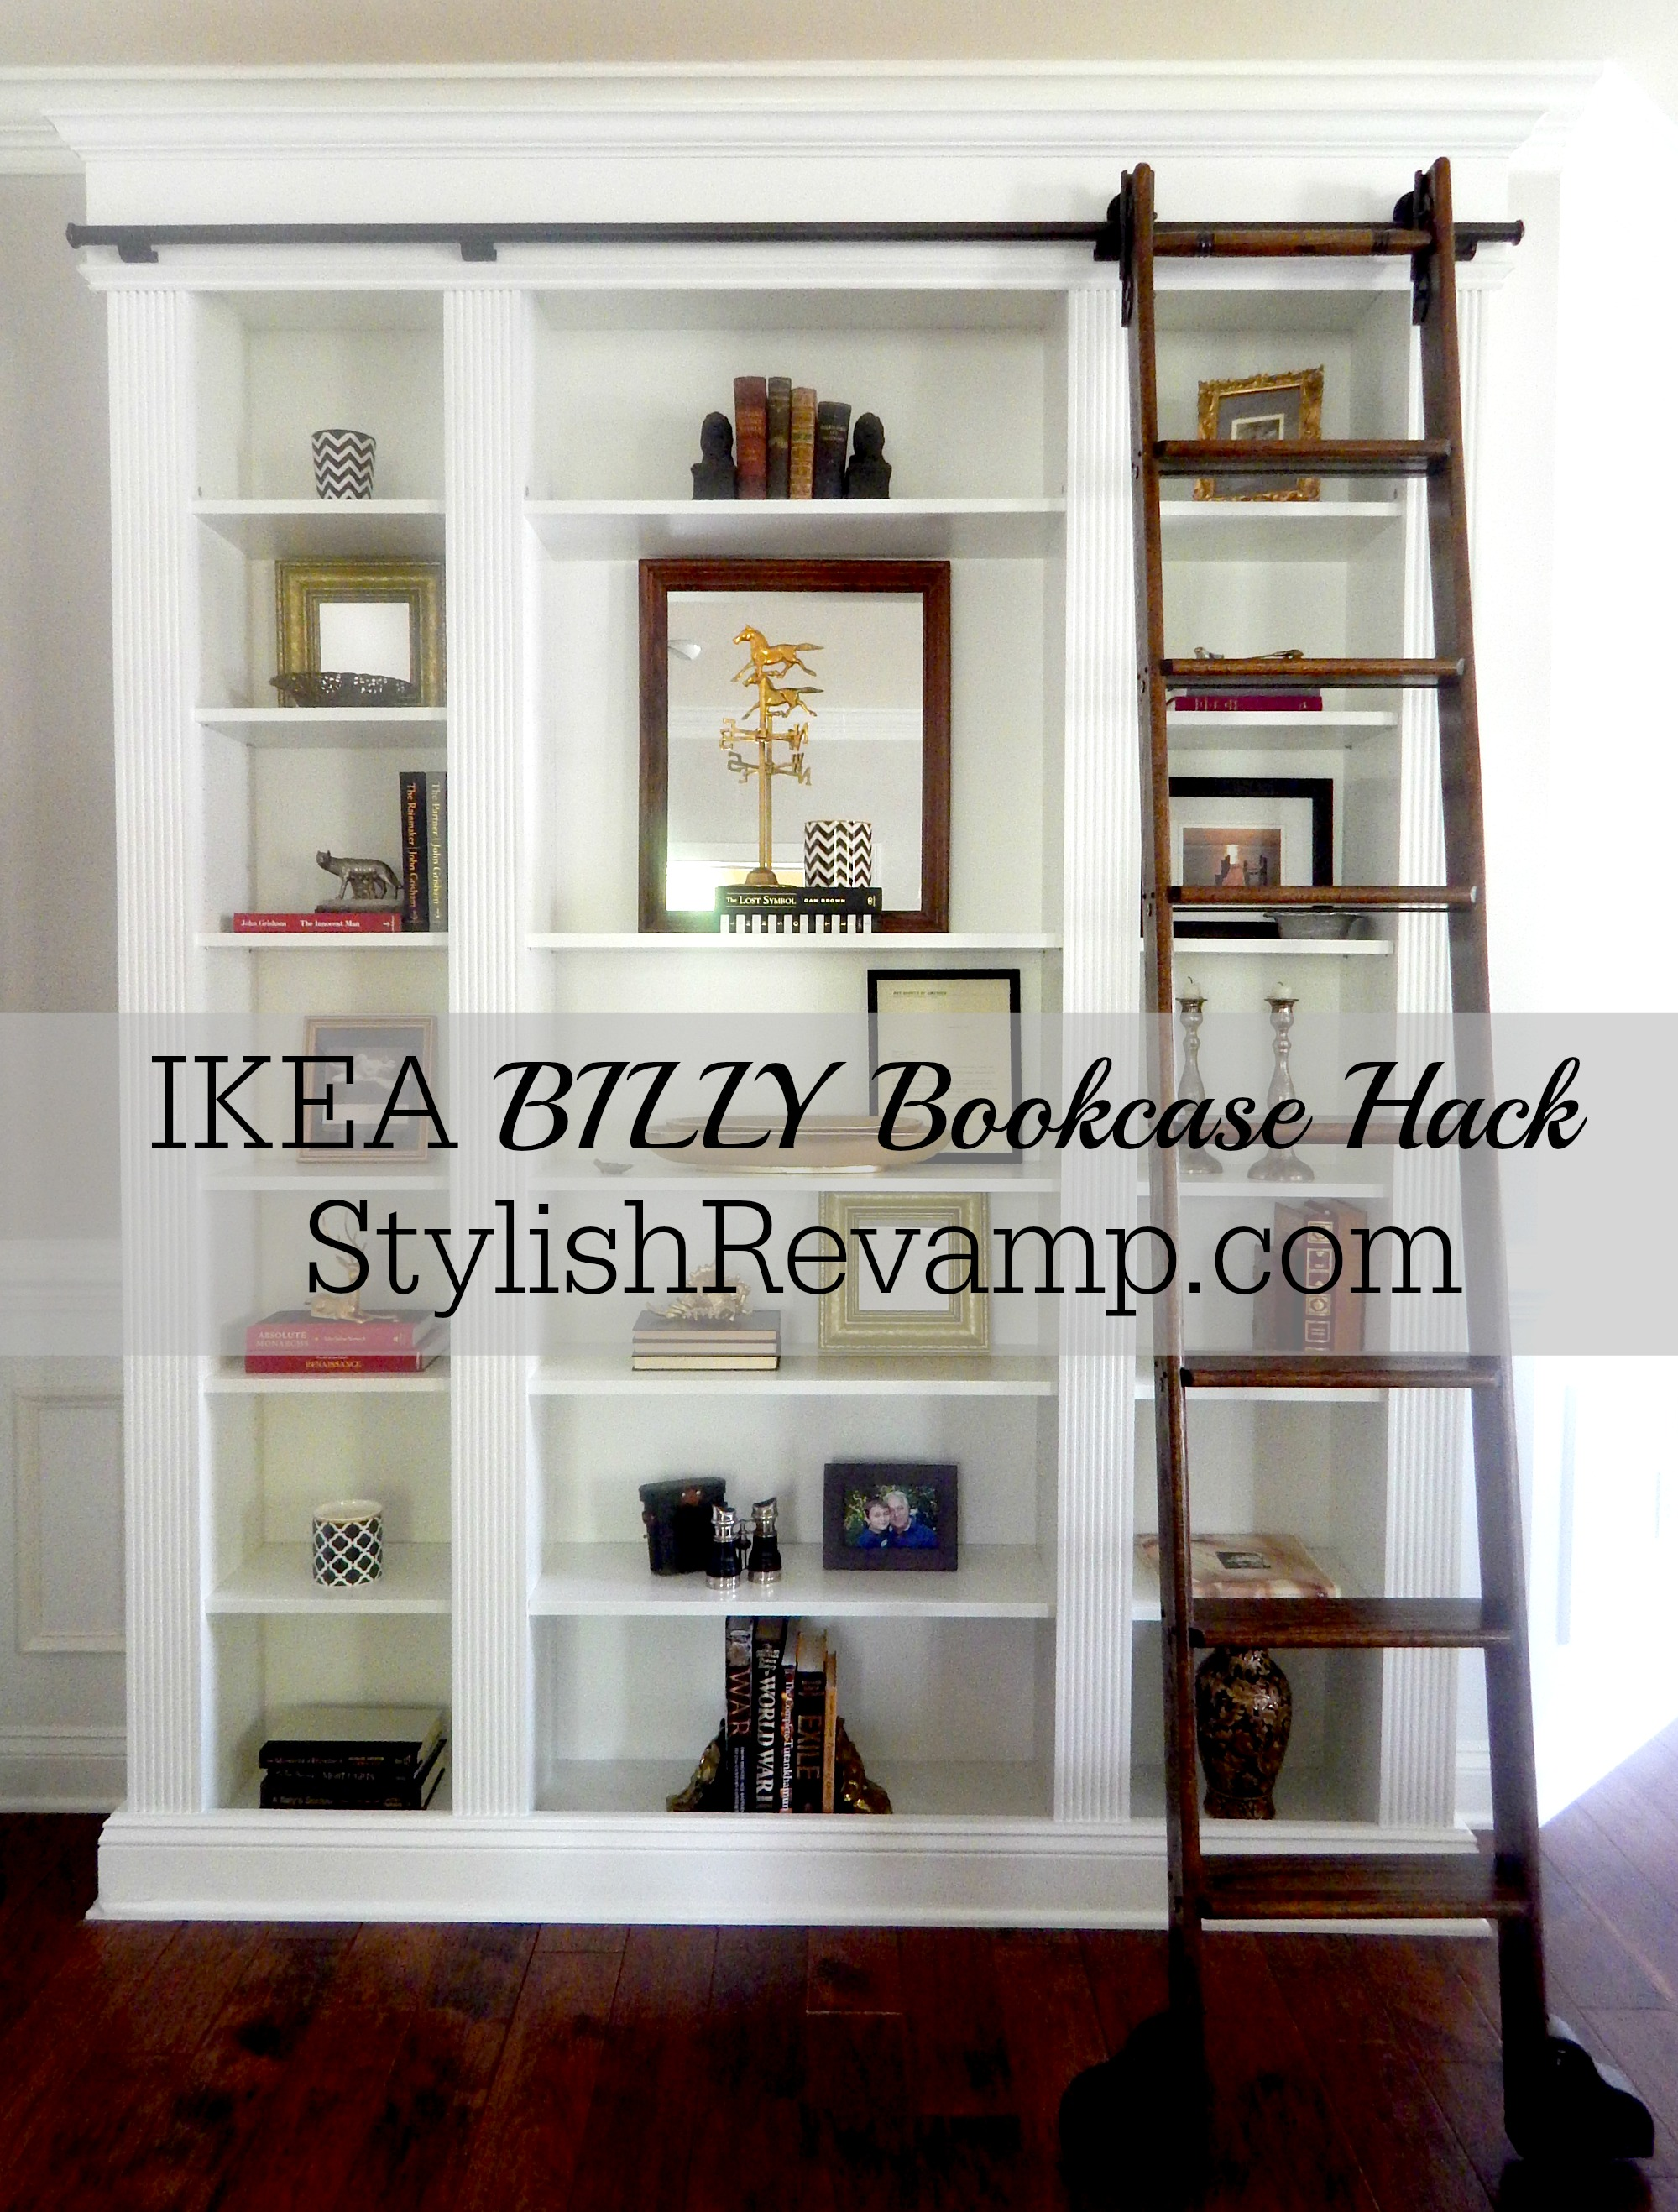 ikea billy bookcase hack 1 - Ikea Billy Bookshelves